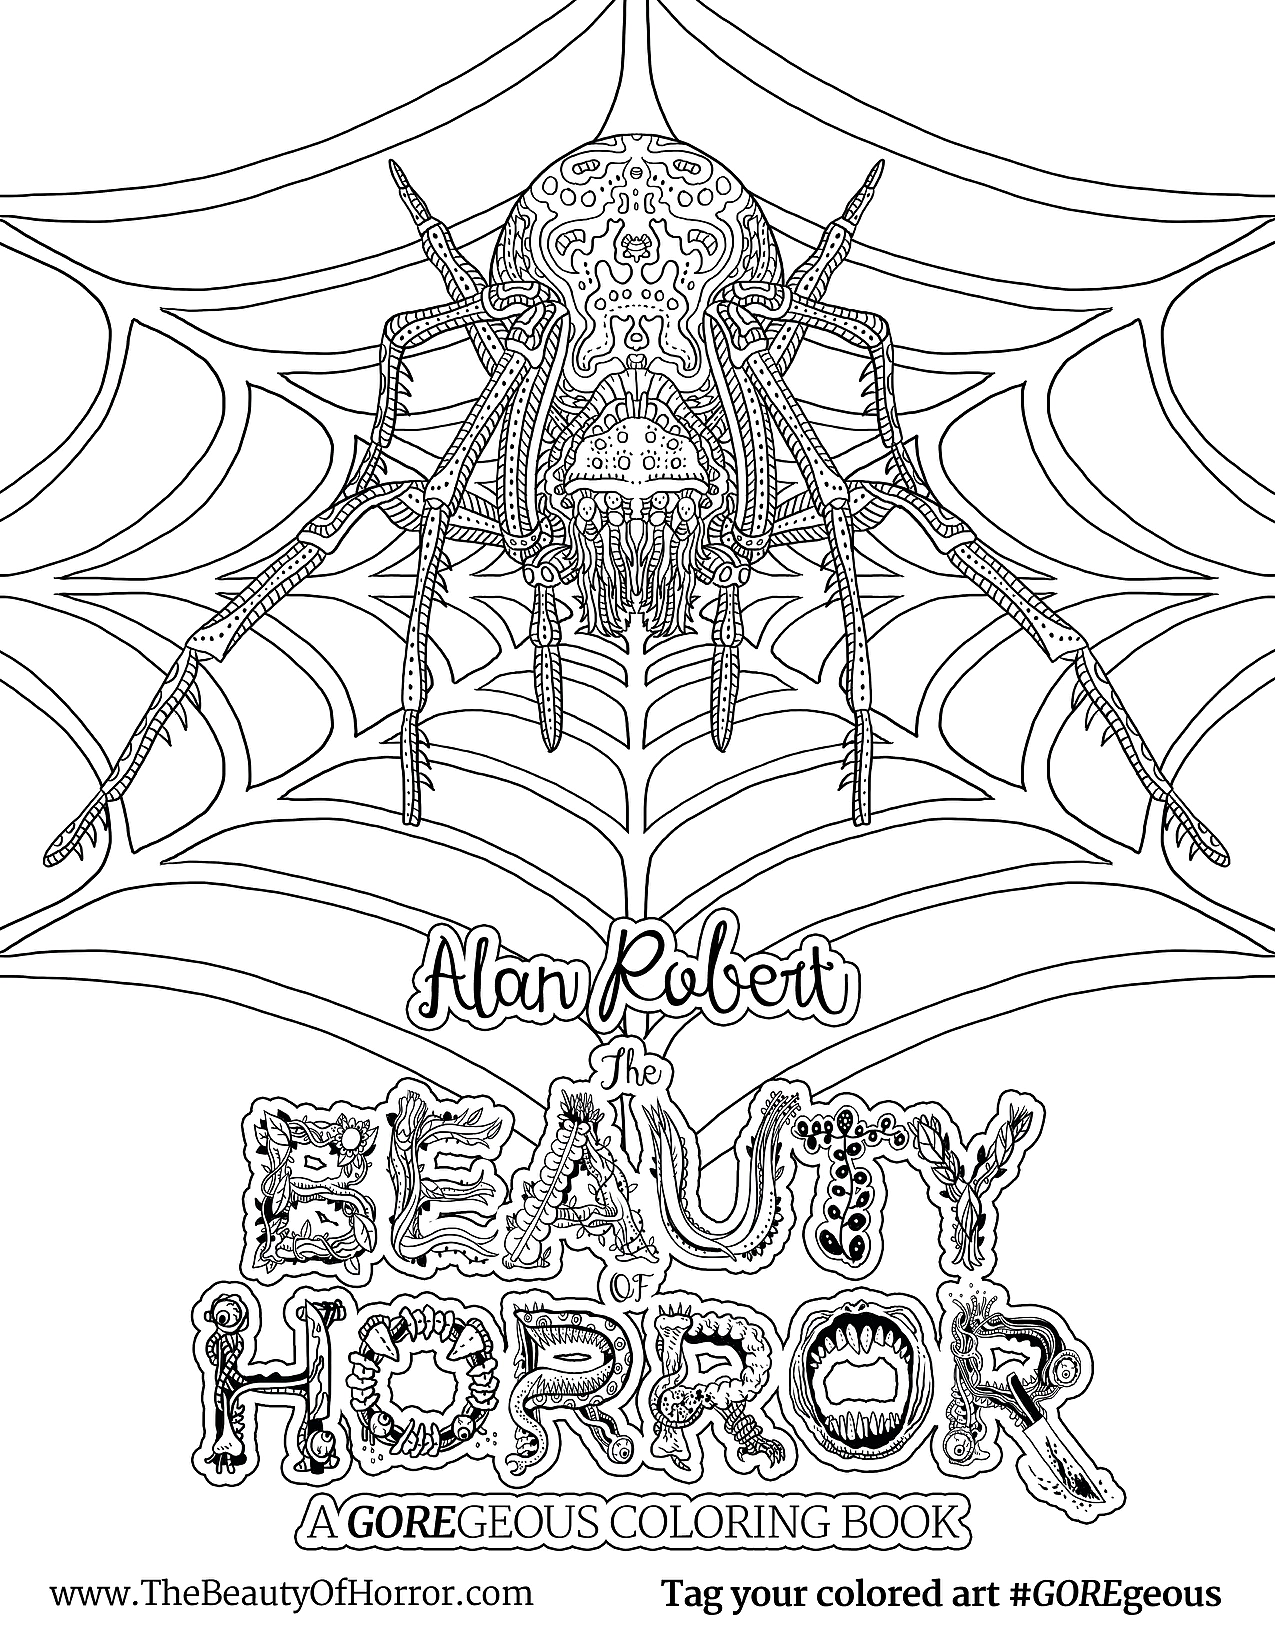 Alan Robert The Beauty Of Horror Ii Coloring Book Interview